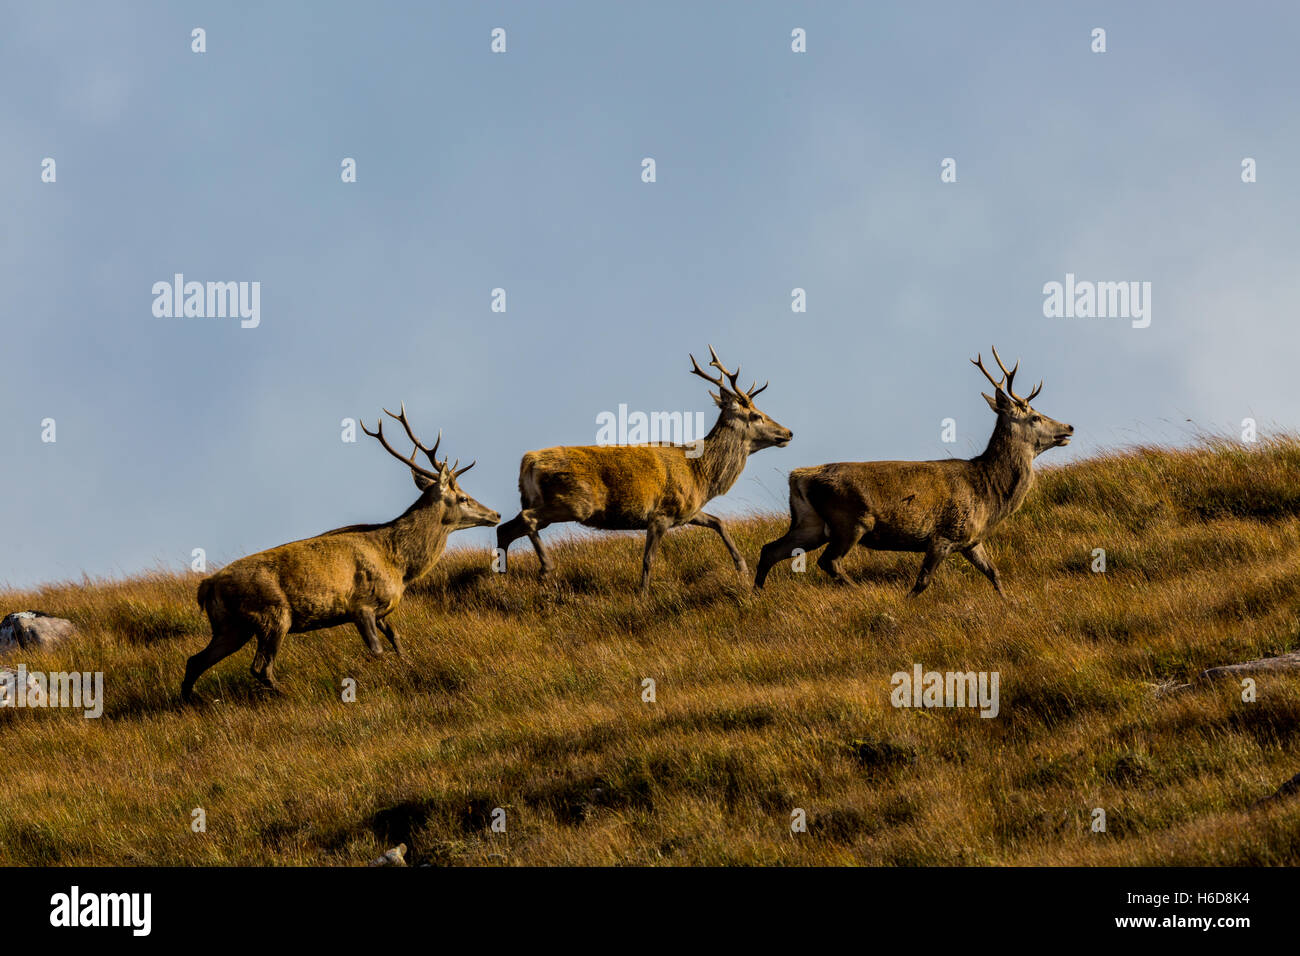 Red Deer stag on moorland in Scotland, UK - Stock Image